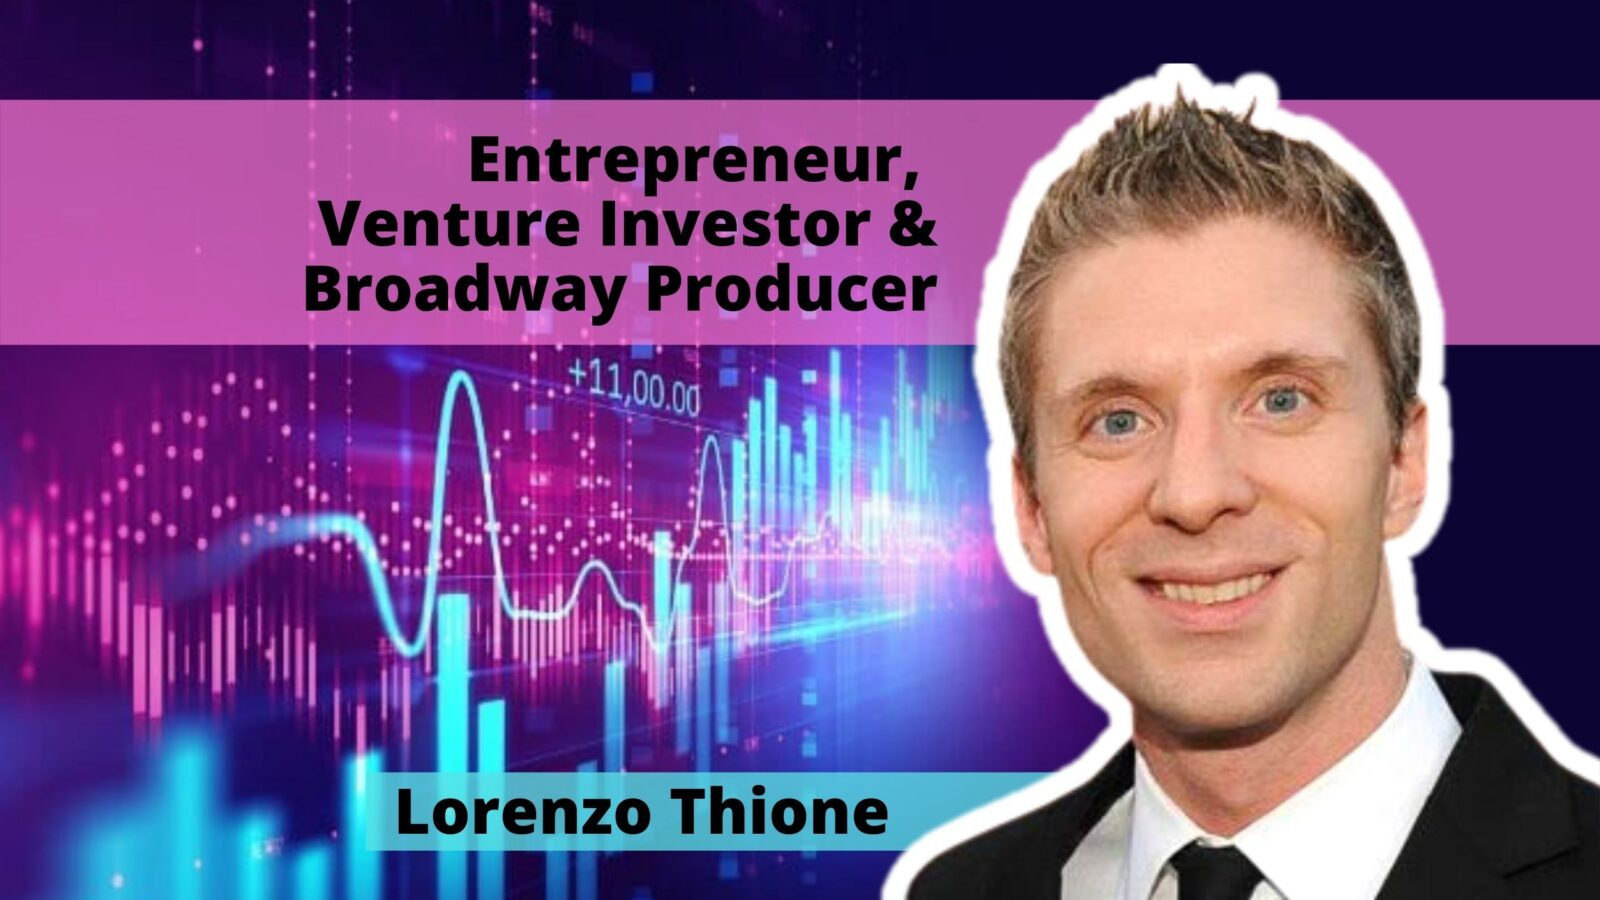 Lorenzo Thione Gaingels LGBTQ Startup investing financial funding investor gay entrepreneur OutBuro